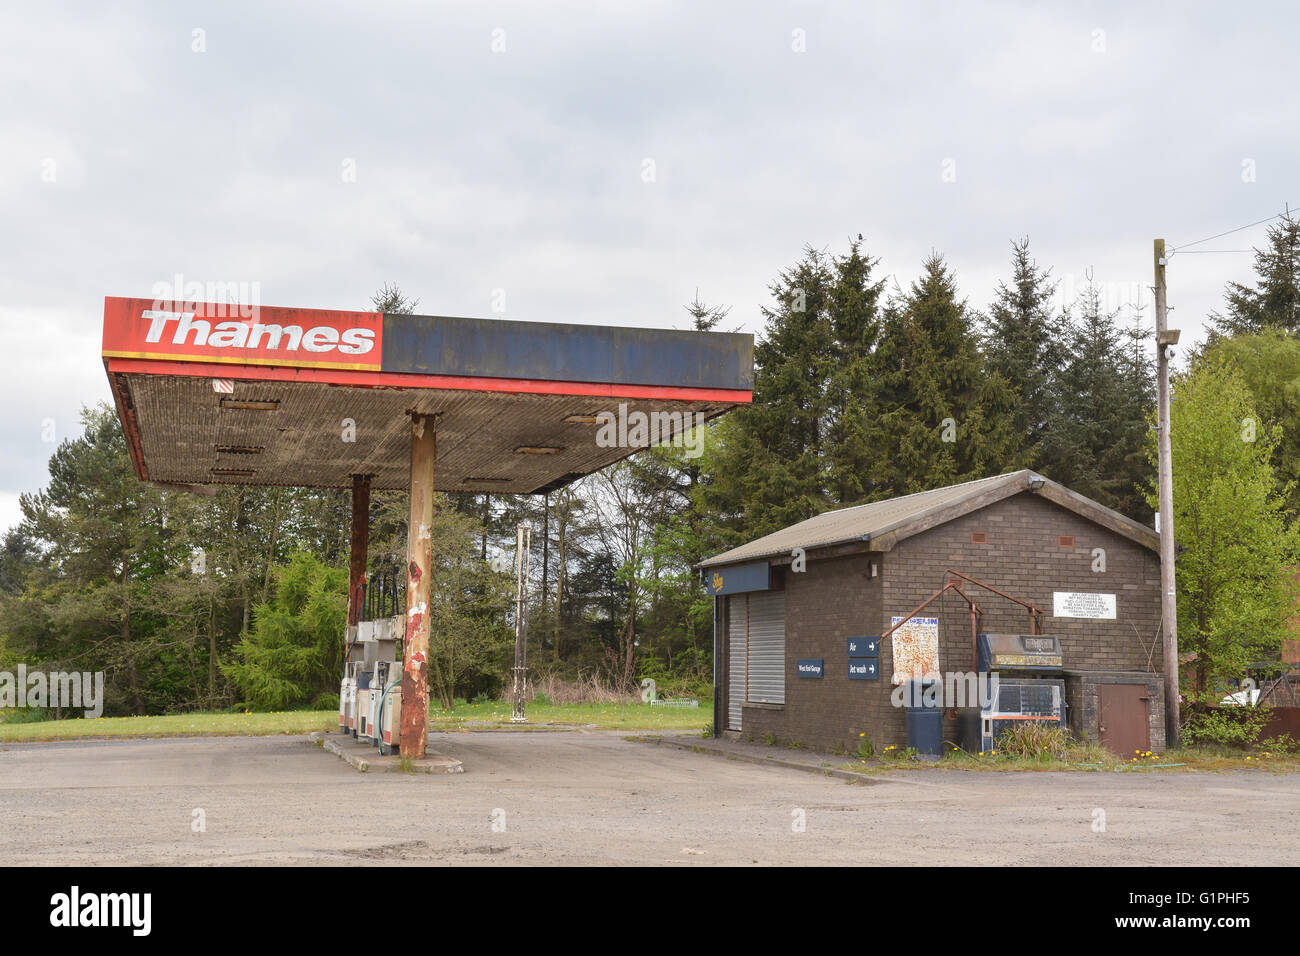 Closed and disused Thames petrol station, Plains, Airdrie, Lanarkshire, Scotland, UK - Stock Image